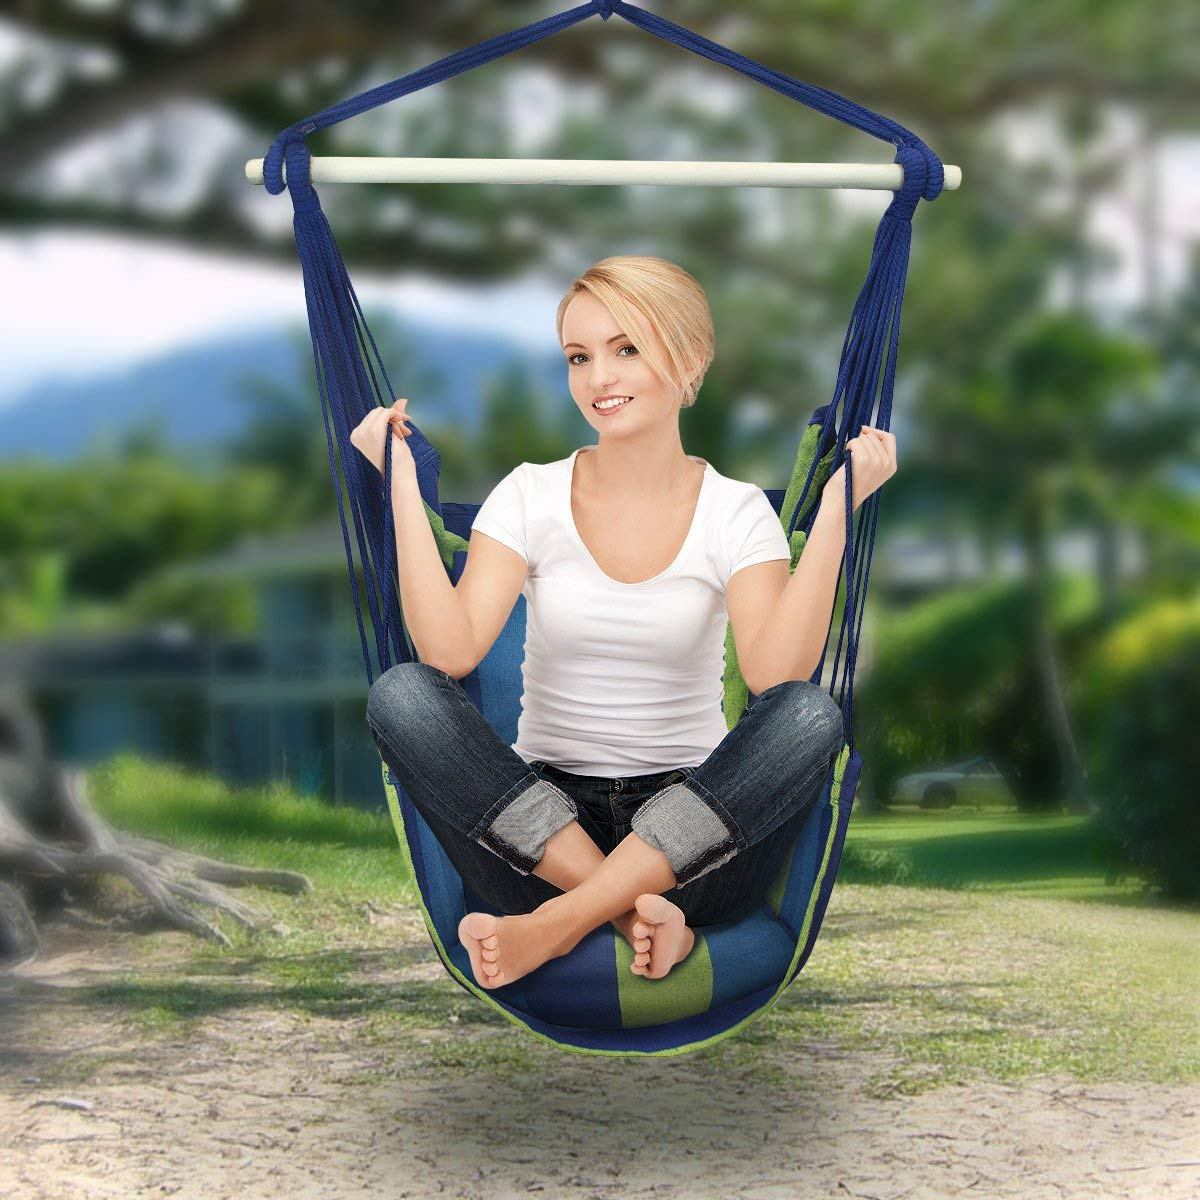 UBesGoo Hanging Rope Blue Hammock Chair Swing Seat for Any Indoor or Outdoor Spaces